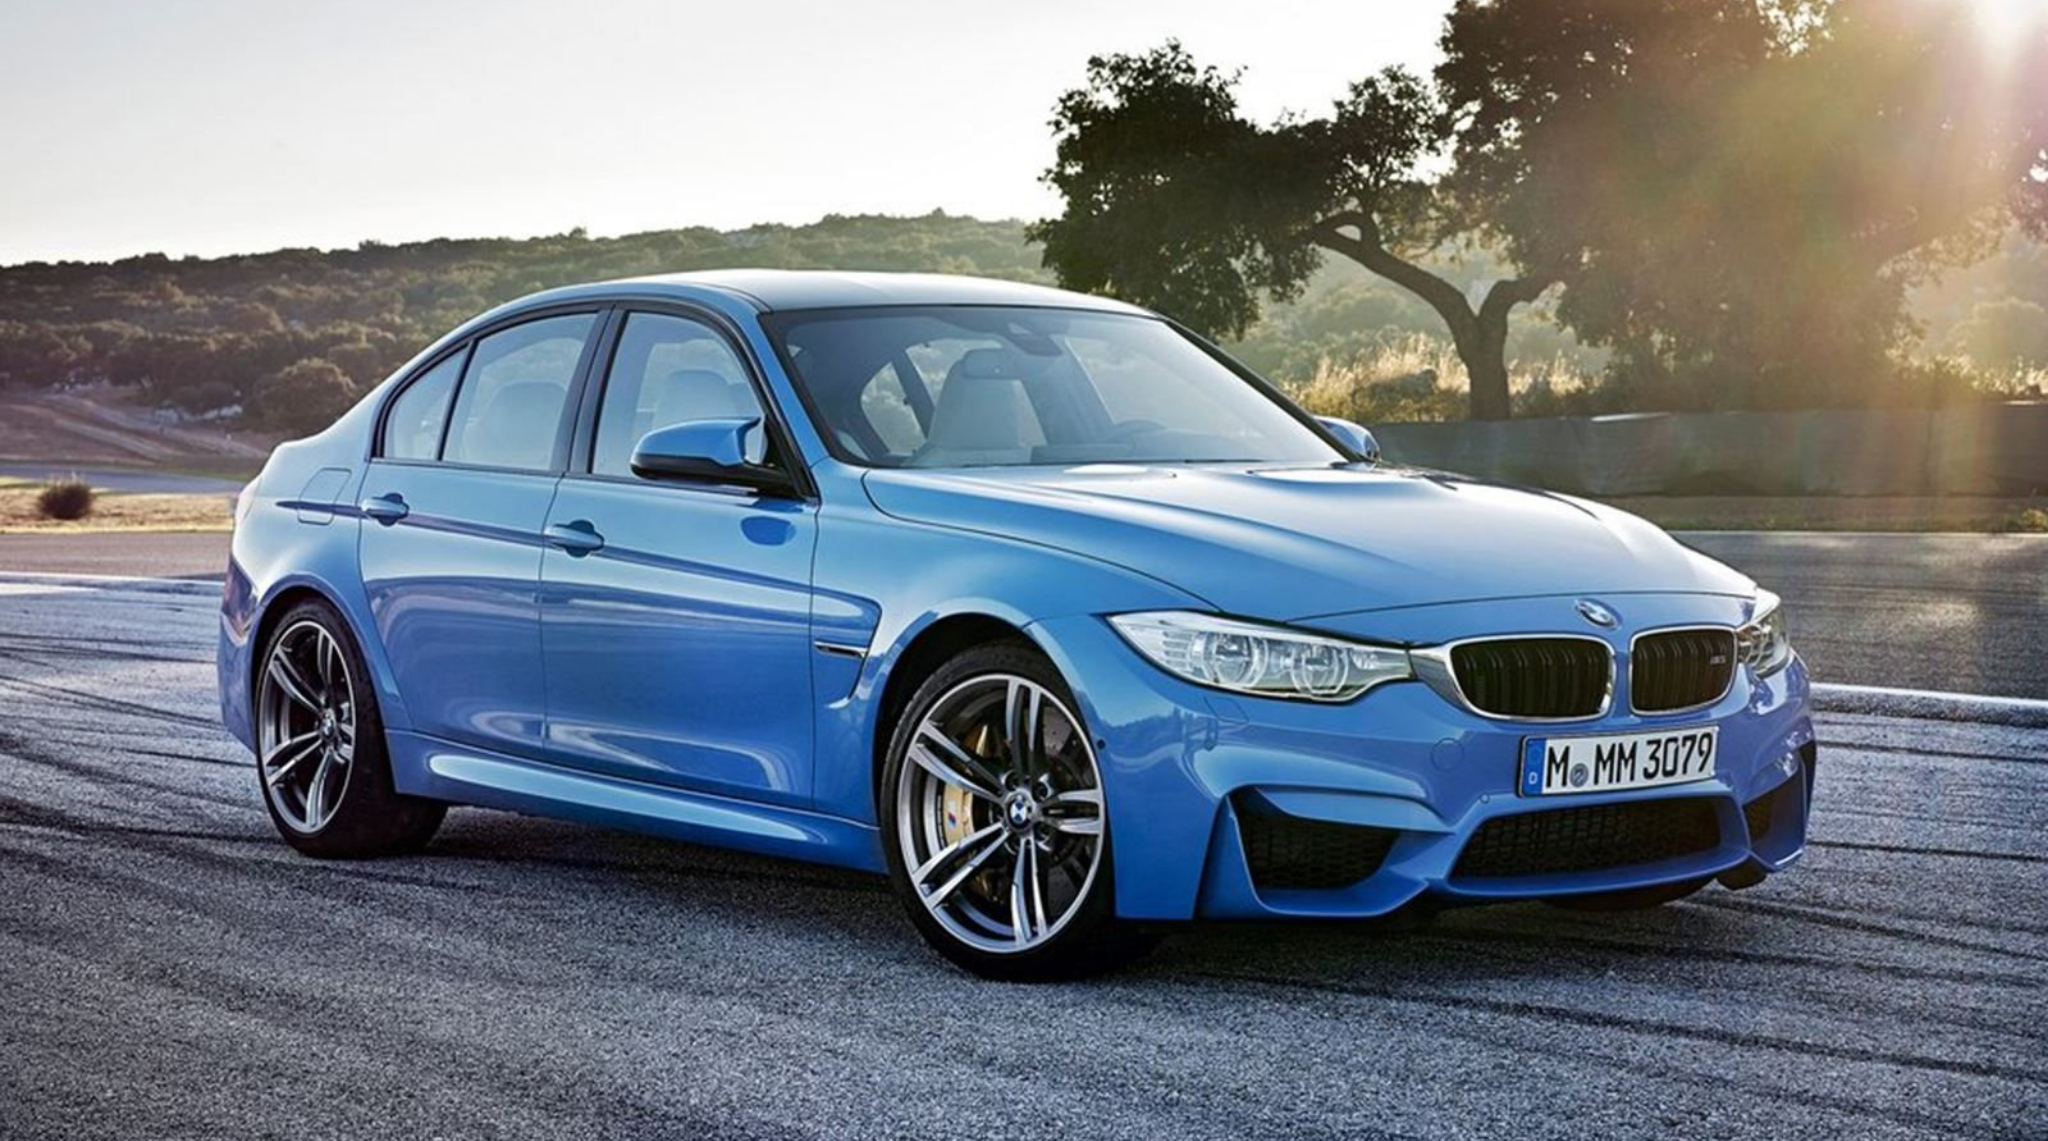 BMW M3 F80 2014 to 2018 Front